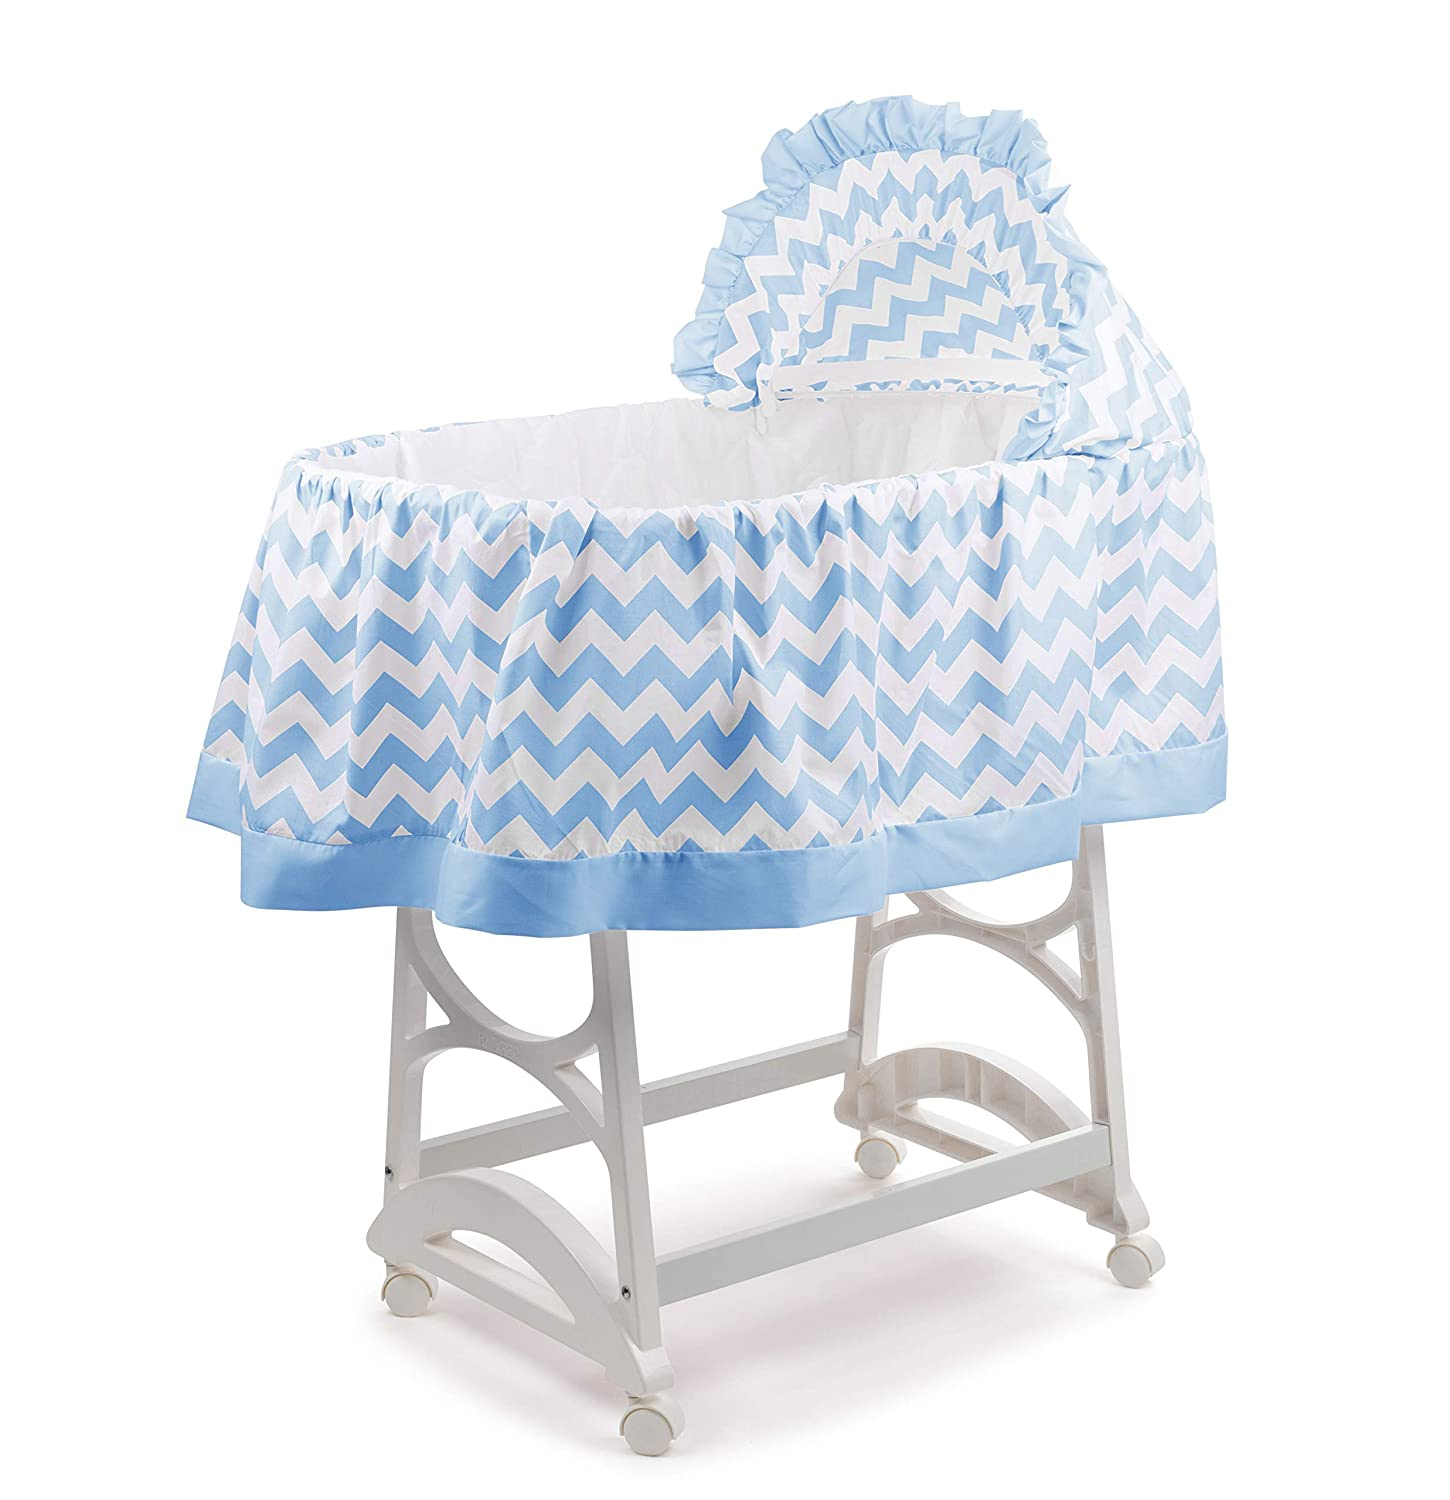 aBaby Chevron Short Bassinet Skirt, Blue, Small 009243422877